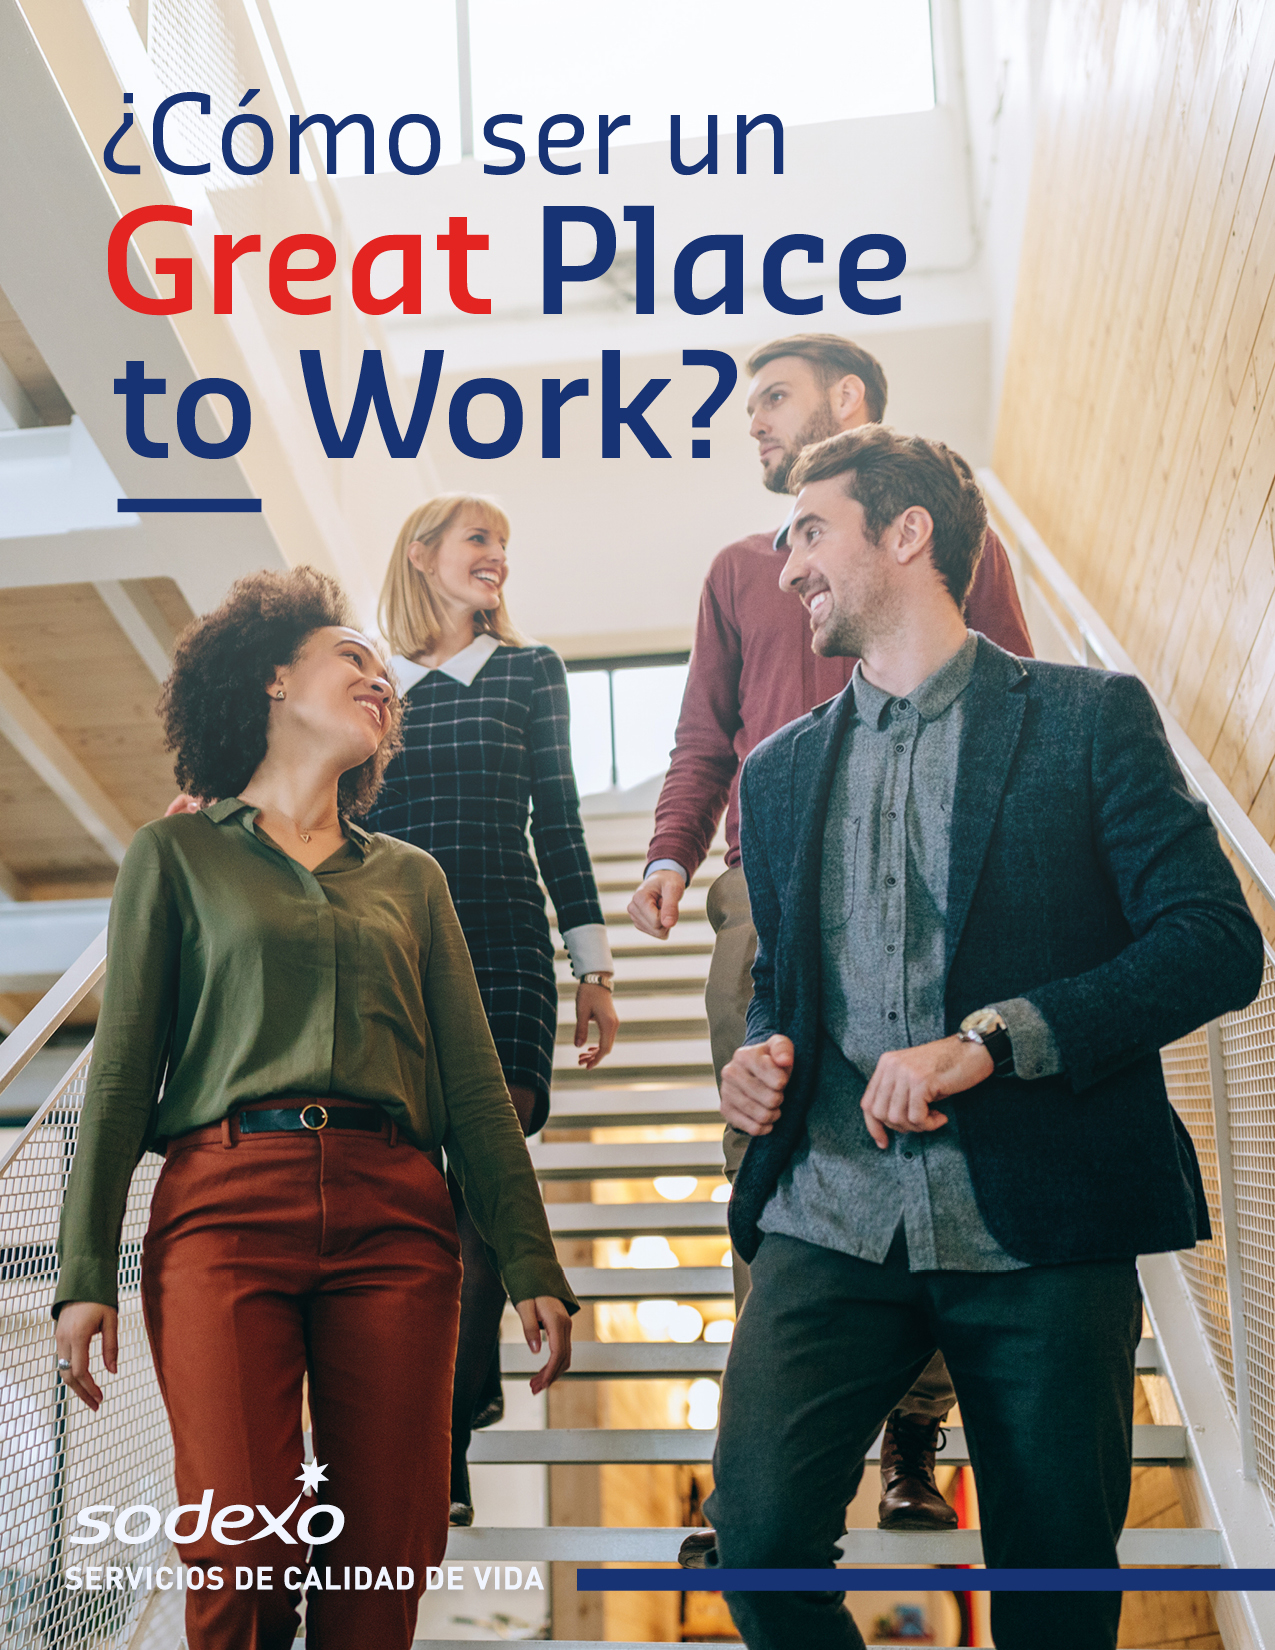 ¿Cómo ser un Great Place to Work?